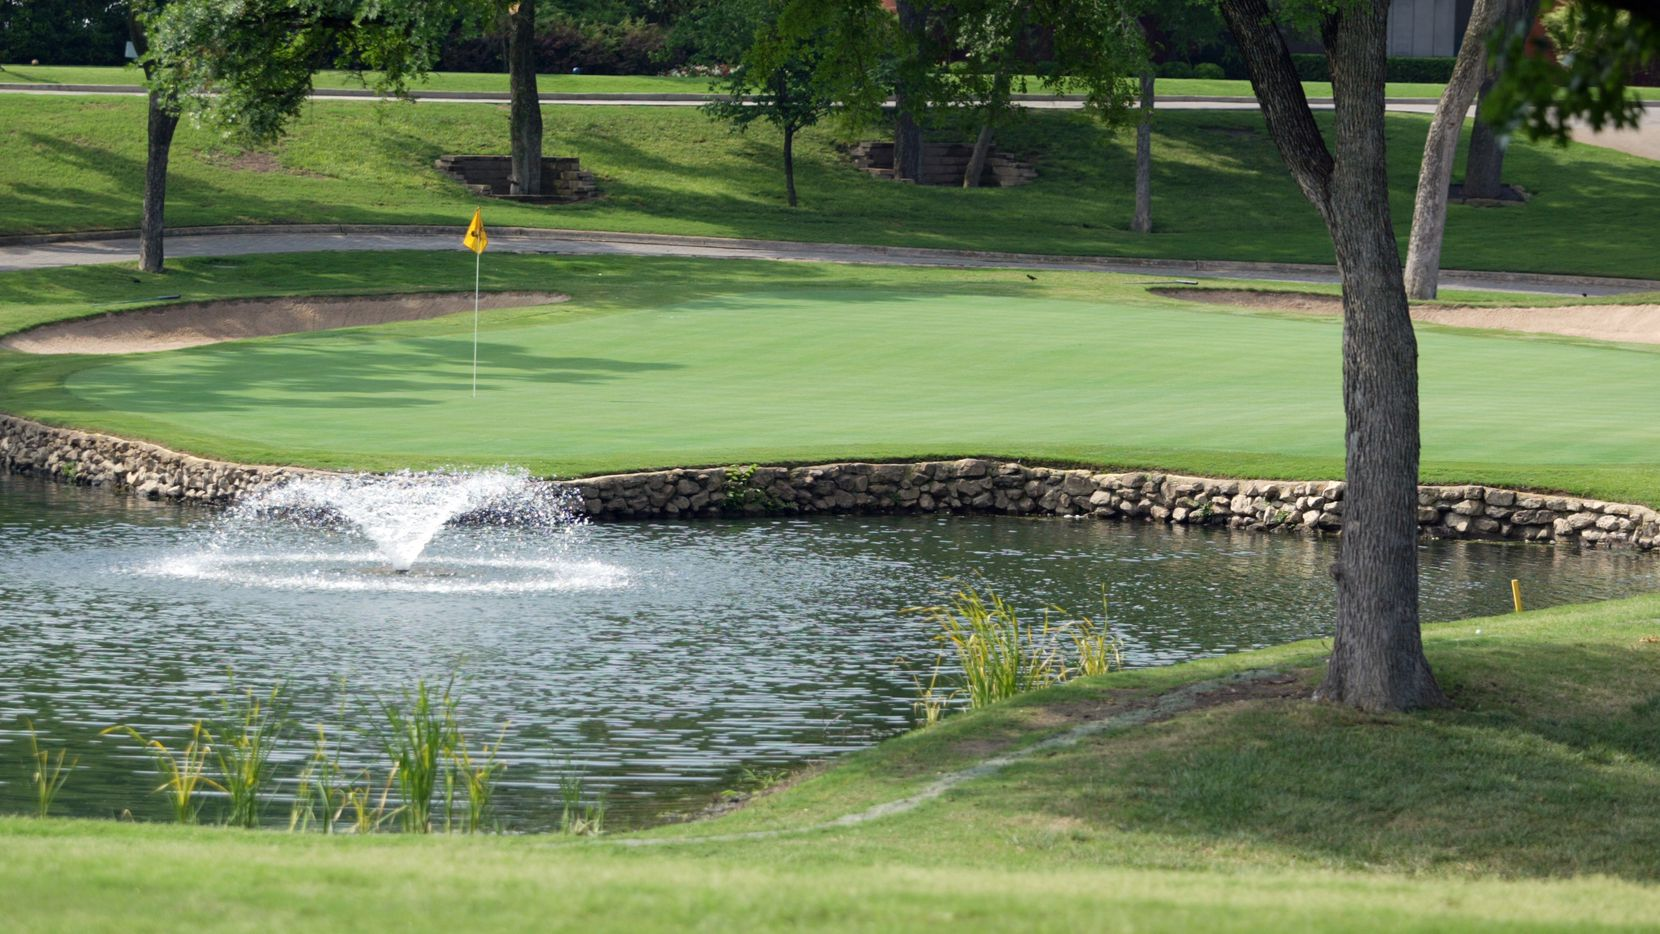 The approach shot to hole # 9 green, a 408 yard par 4, at the Colonial Country Club, Tuesday, April 6, 2003, in Fort Worth.